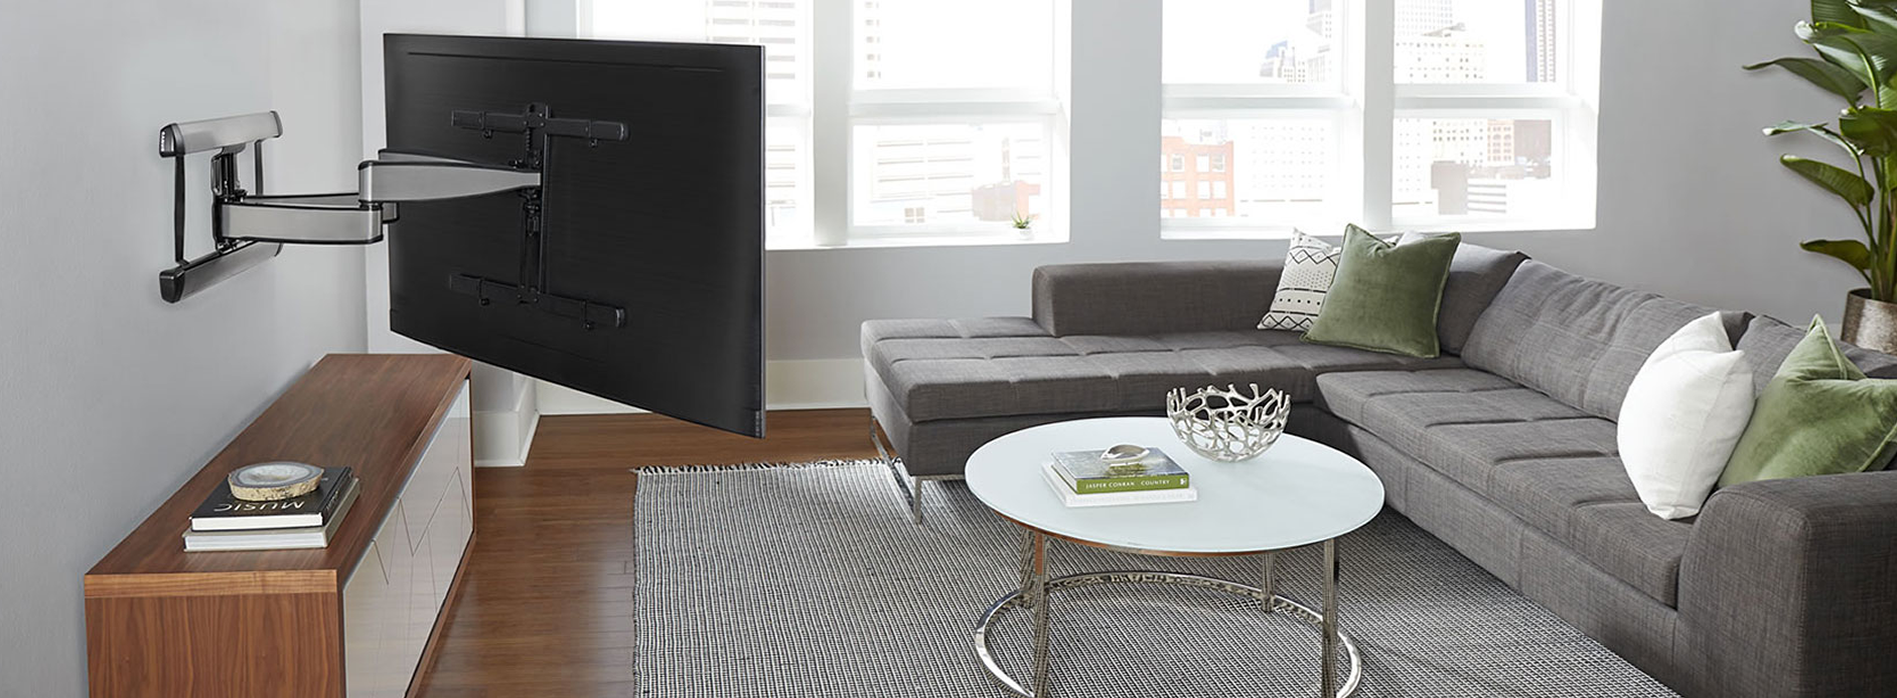 TV Installation Services New Jersey